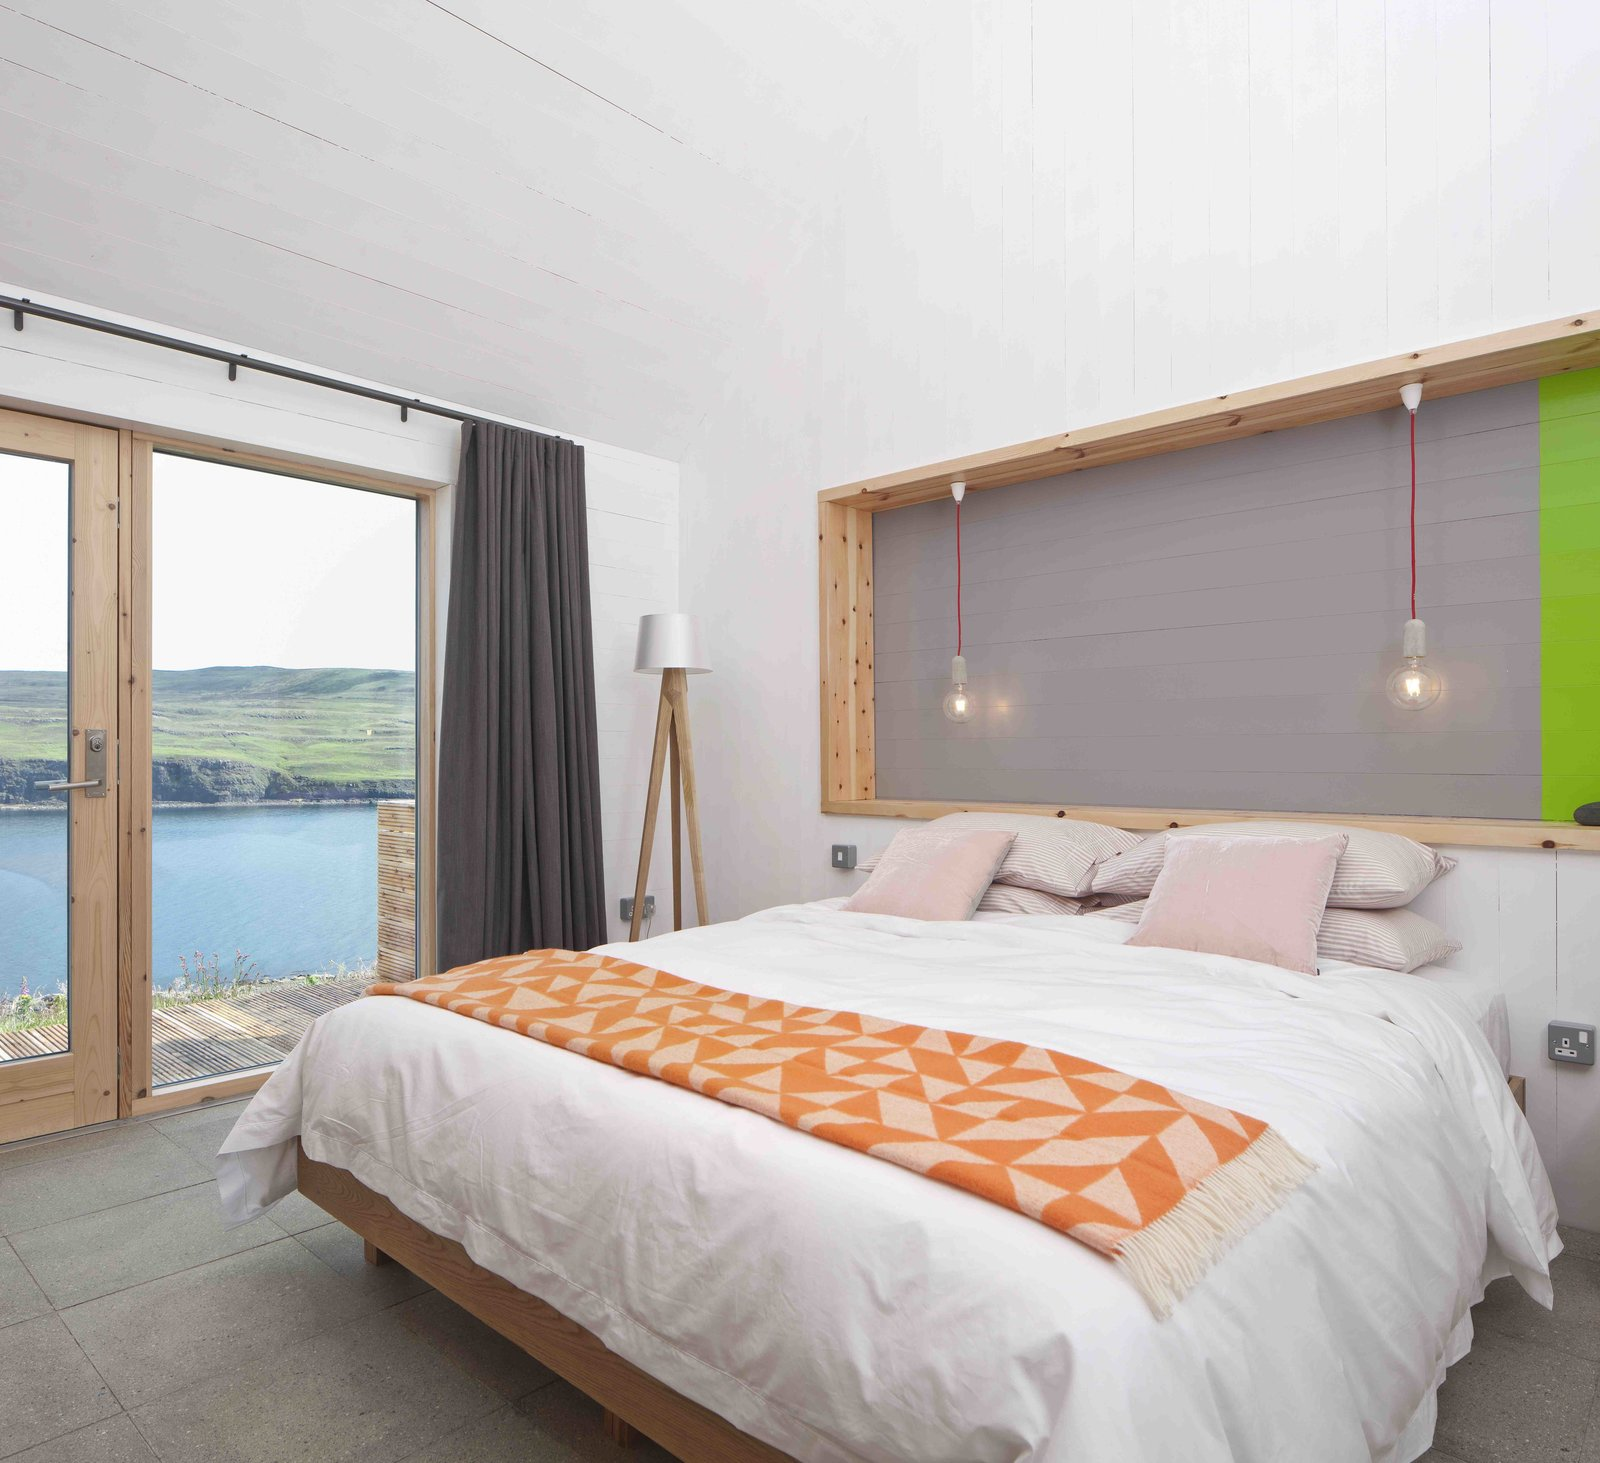 Bedroom, Floor Lighting, Concrete Floor, and Bed  Photo 8 of 11 in Stay in a Modern Tin Cottage on Scotland's Isle of Skye